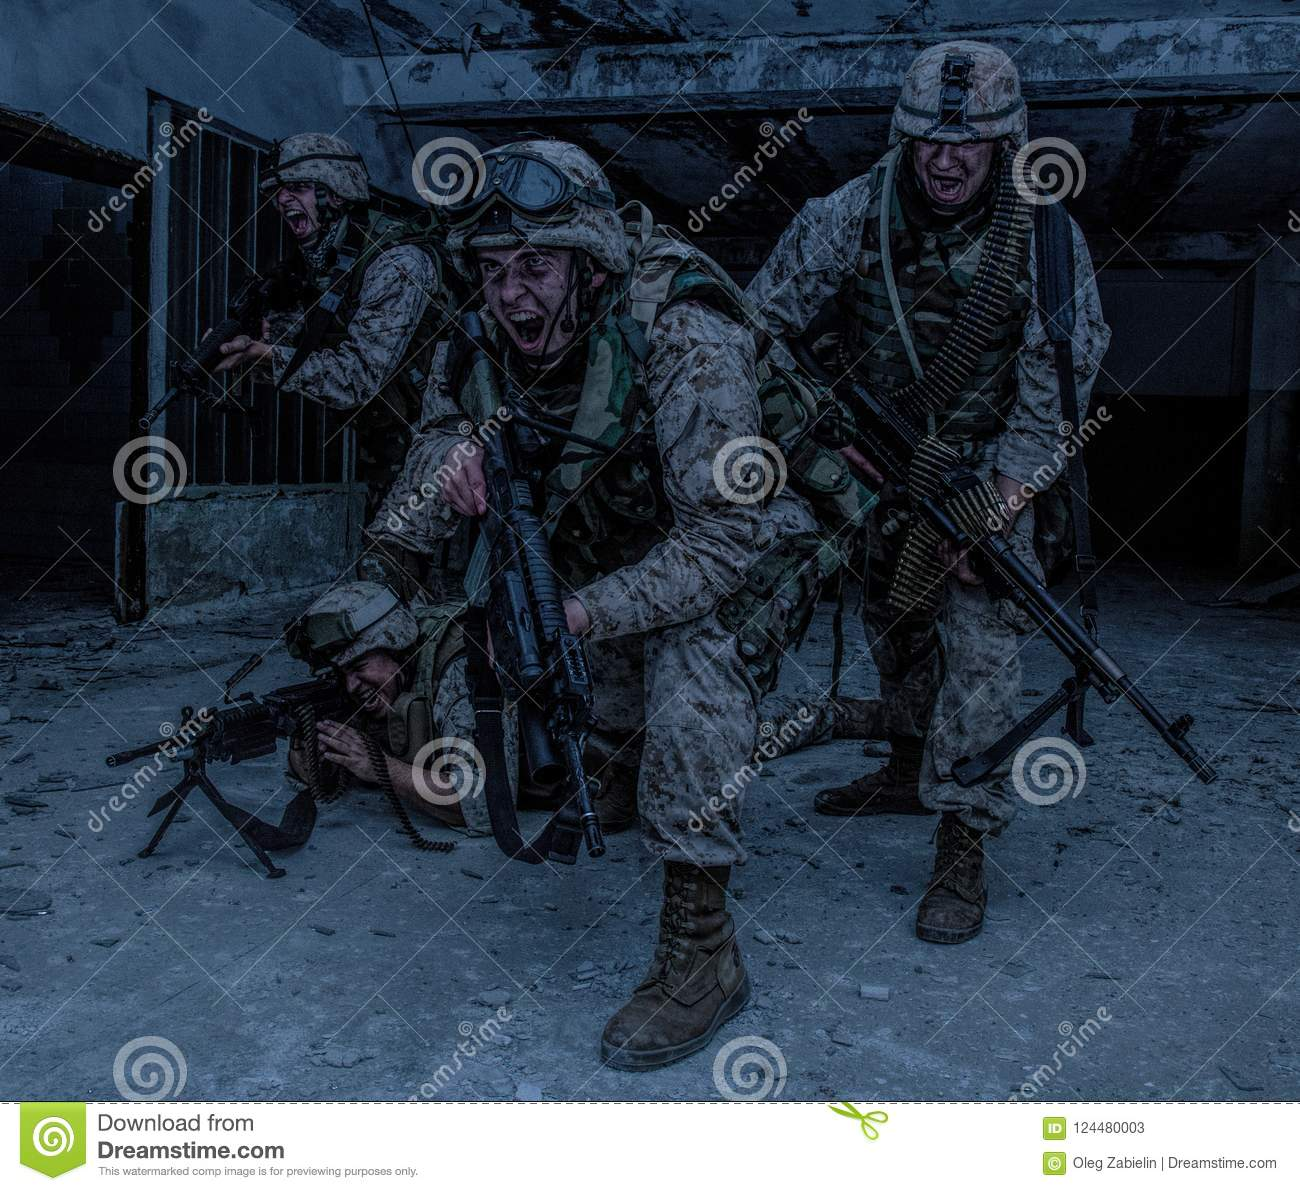 download marine corps soldier fighters breakthrough with firefight stock image image of rush fire